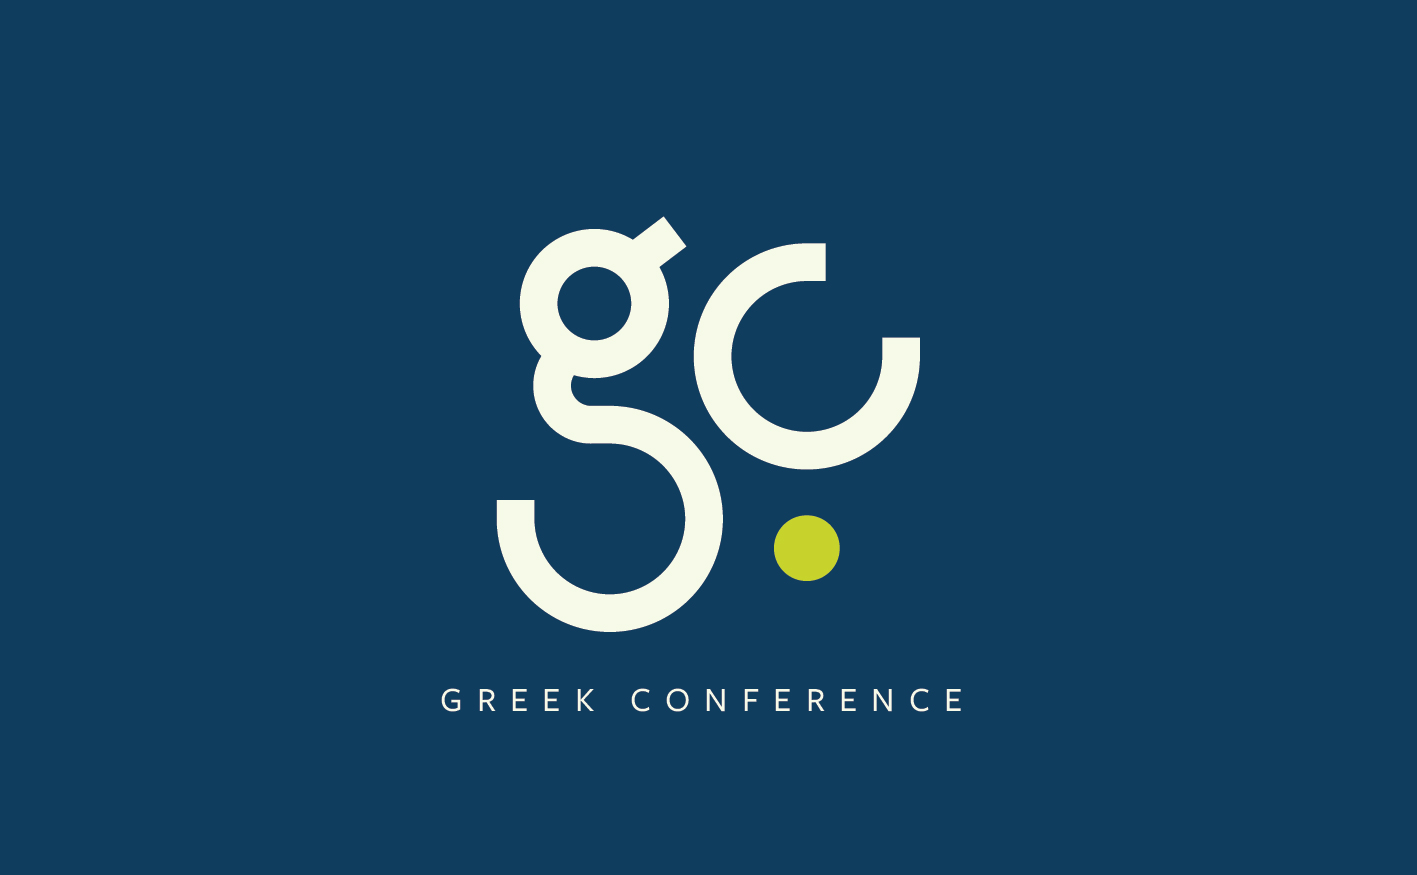 GreekConference-Website-420px-02